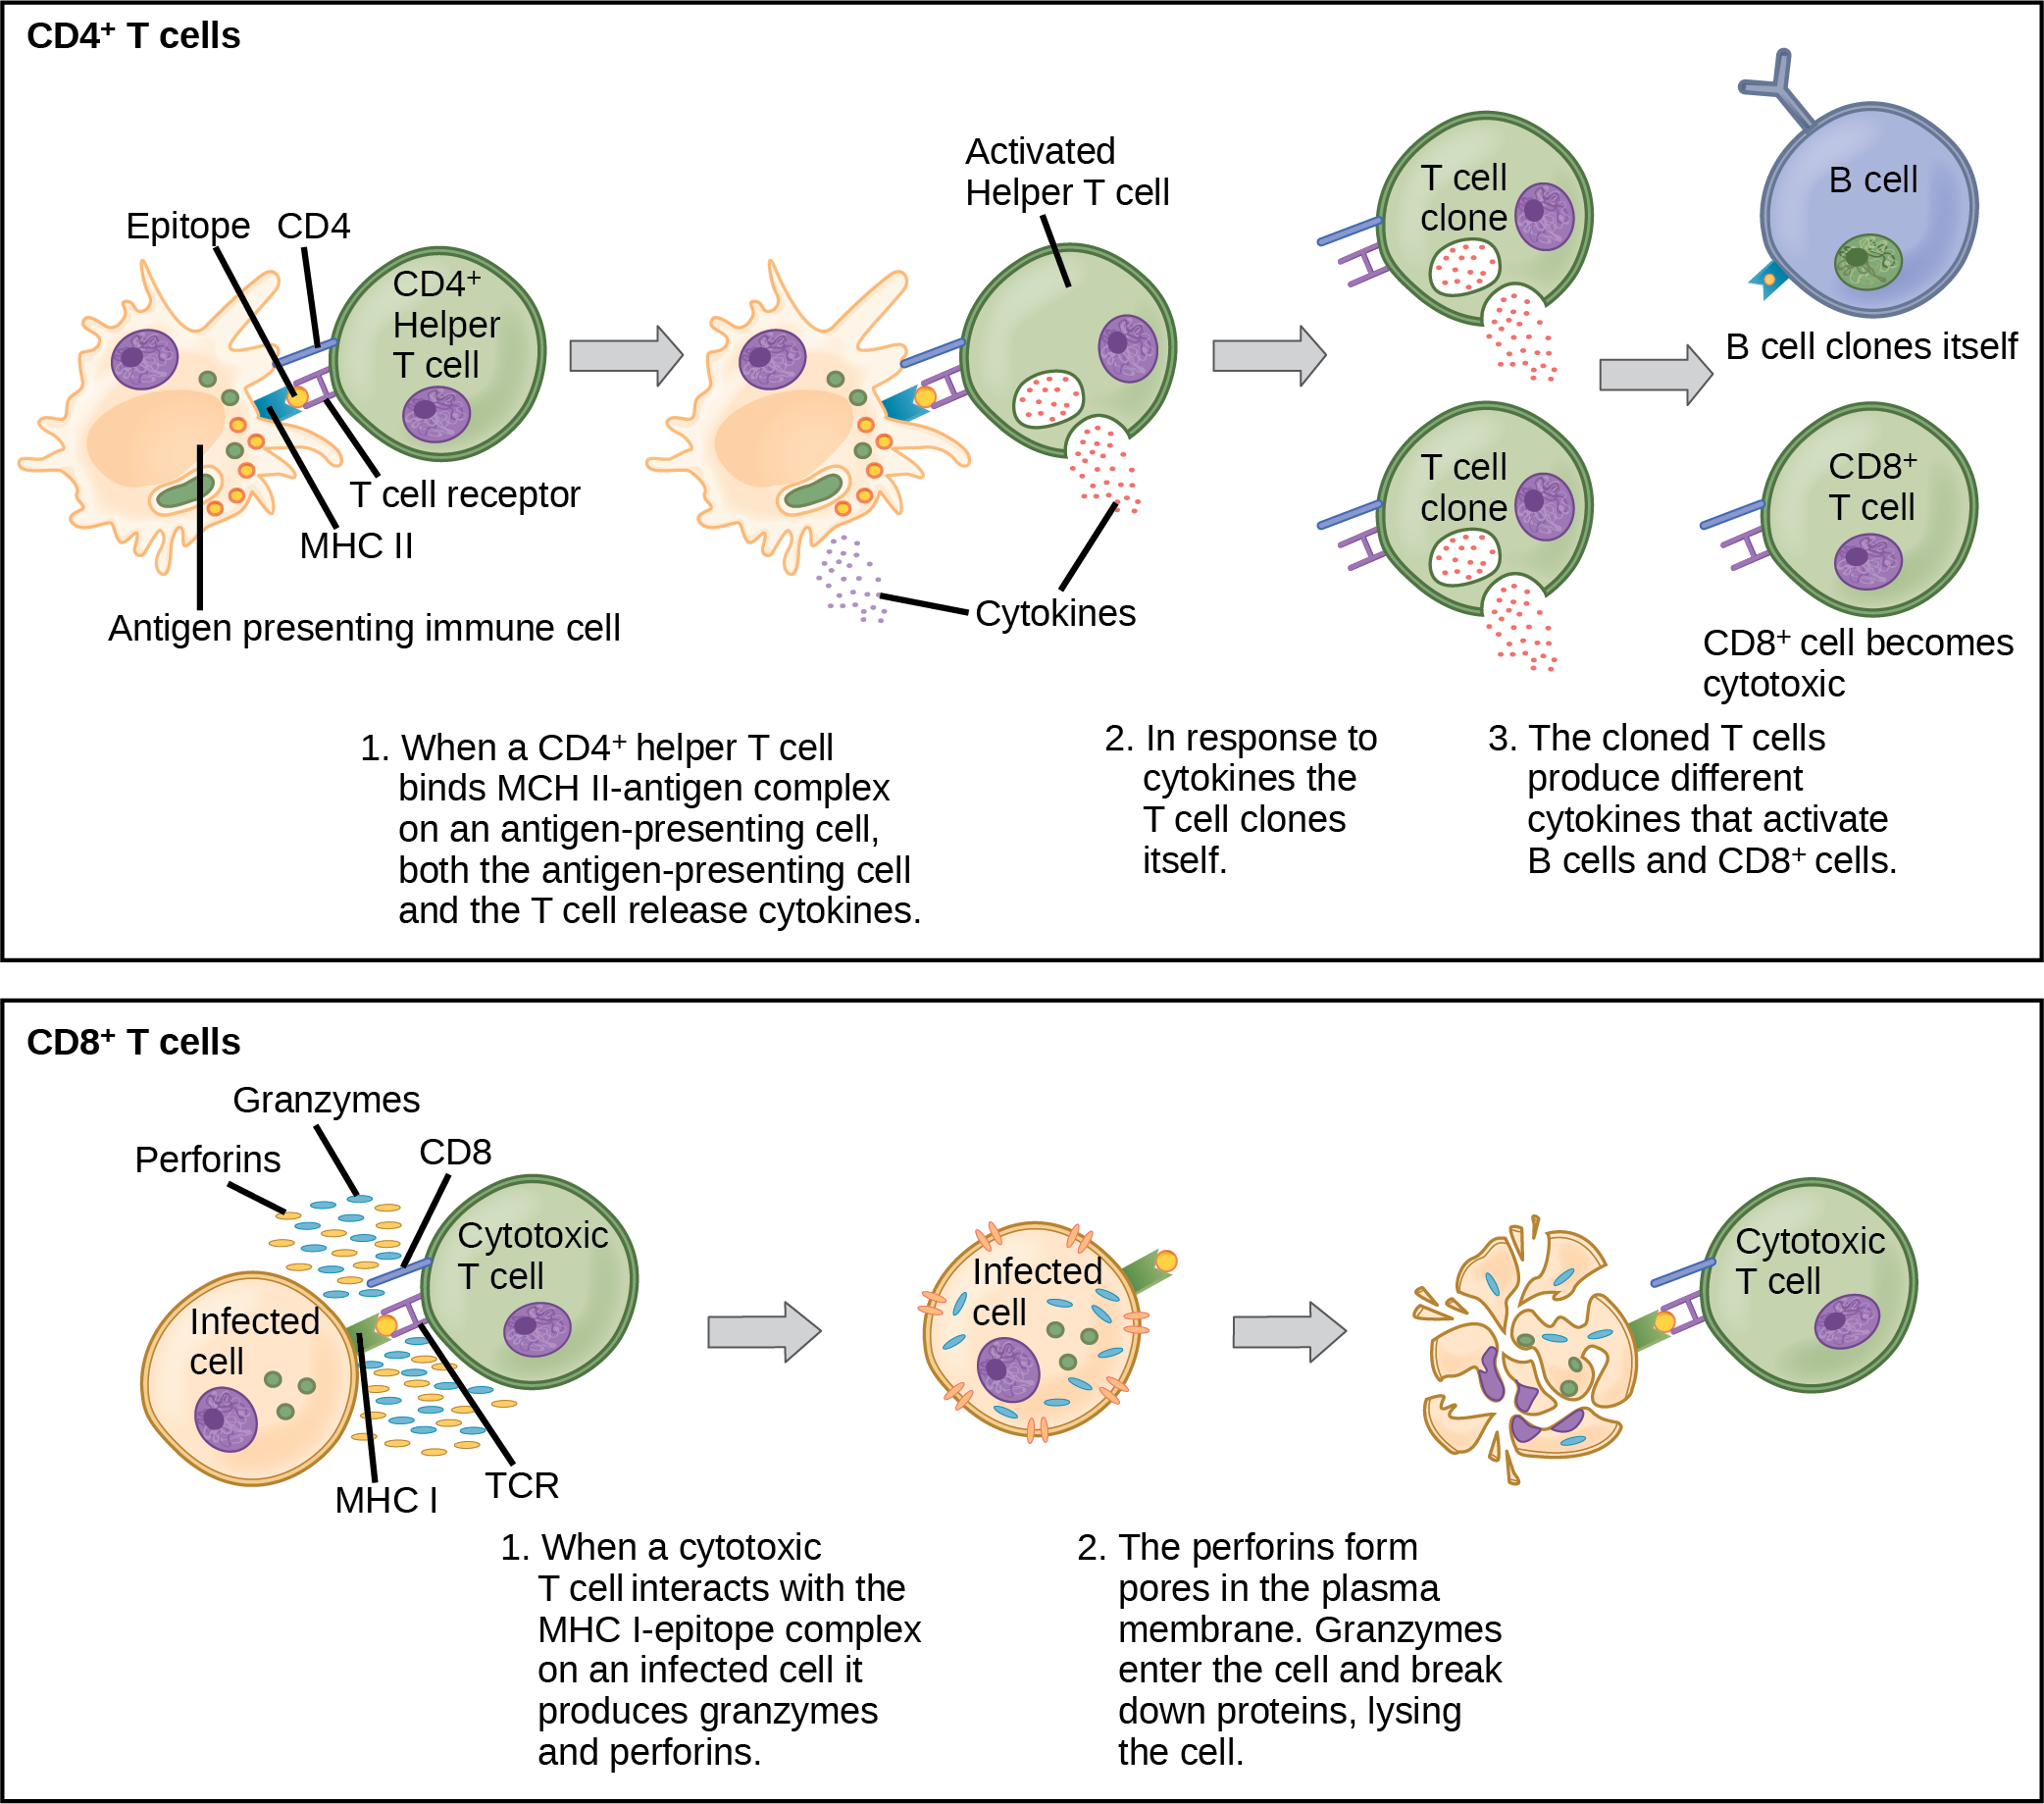 Illustration shows activation of a C D 4 plus helper T cell. An antigen-presenting cell digests a pathogen. Epitopes from this pathogen are presented in conjunction with M H C I I molecules on the cell surface. A T cell receptor and a C D 8 receptor, both on the surface of the T cell, bind the M H C I I epitope complex. As a result, the helper T cell becomes activated and both the helper T cell and antigen-presenting cell release cytokines. The cytokines induce the helper T cell to clone itself. The cloned helper T cells release different cytokines that activate B cells and C D 8 plus T cells, turning them into cytotoxic T cells. The cytotoxic and binds the M H C I epitope complex on an infected cell. The cytotoxic T cell then releases perforin molecules, which form a pore in the plasma membrane, and granzymes, which break down proteins, killing the cell.